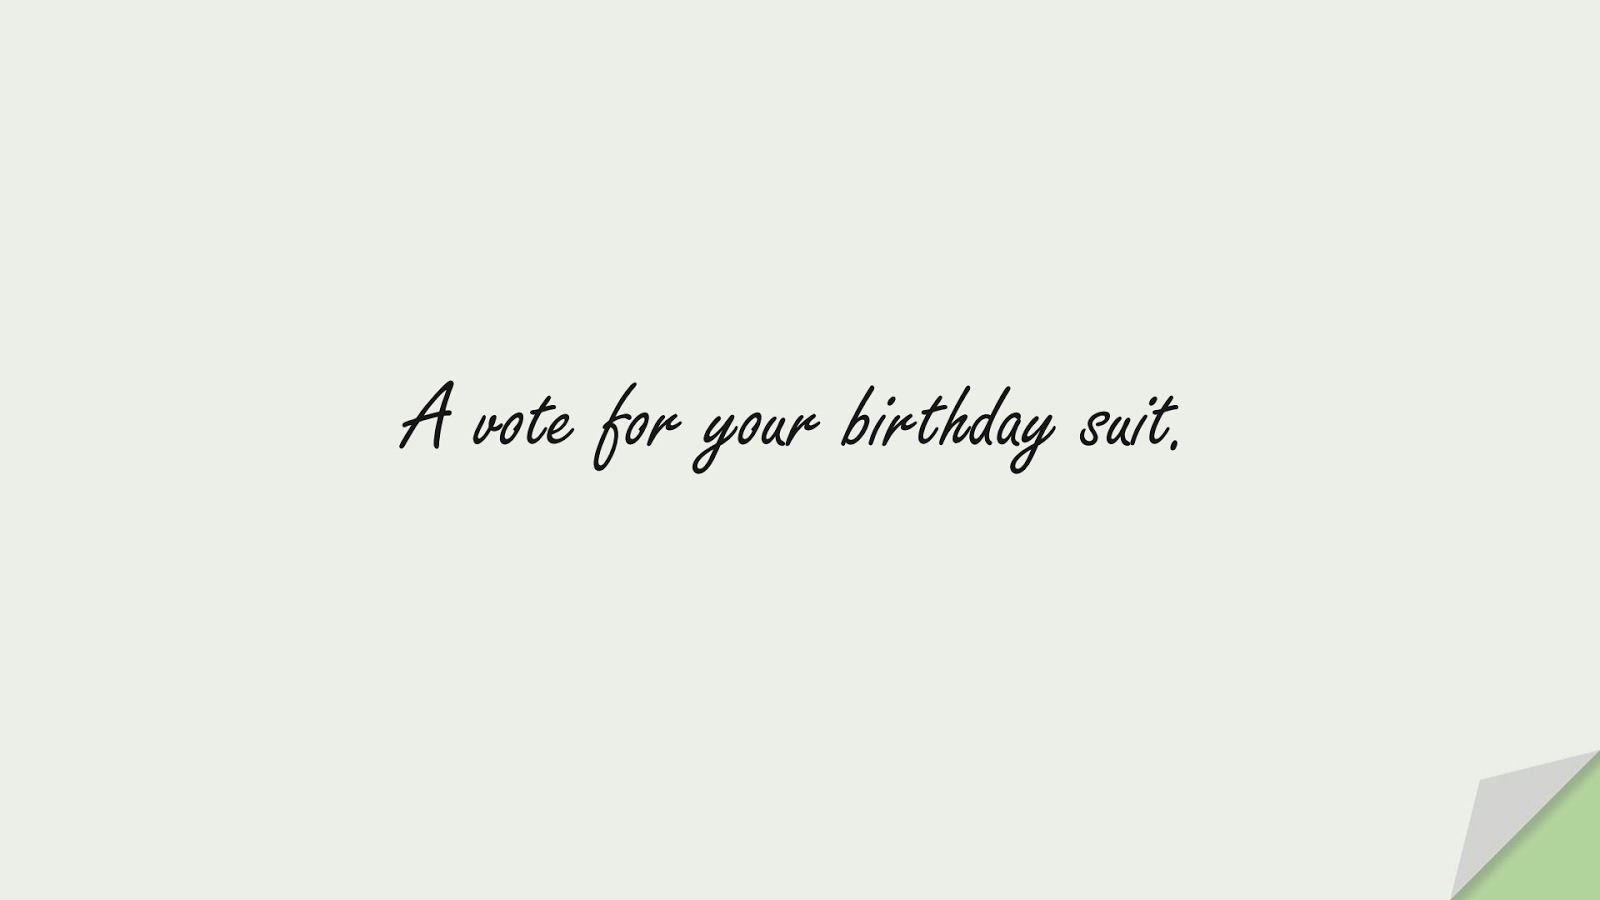 A vote for your birthday suit.FALSE